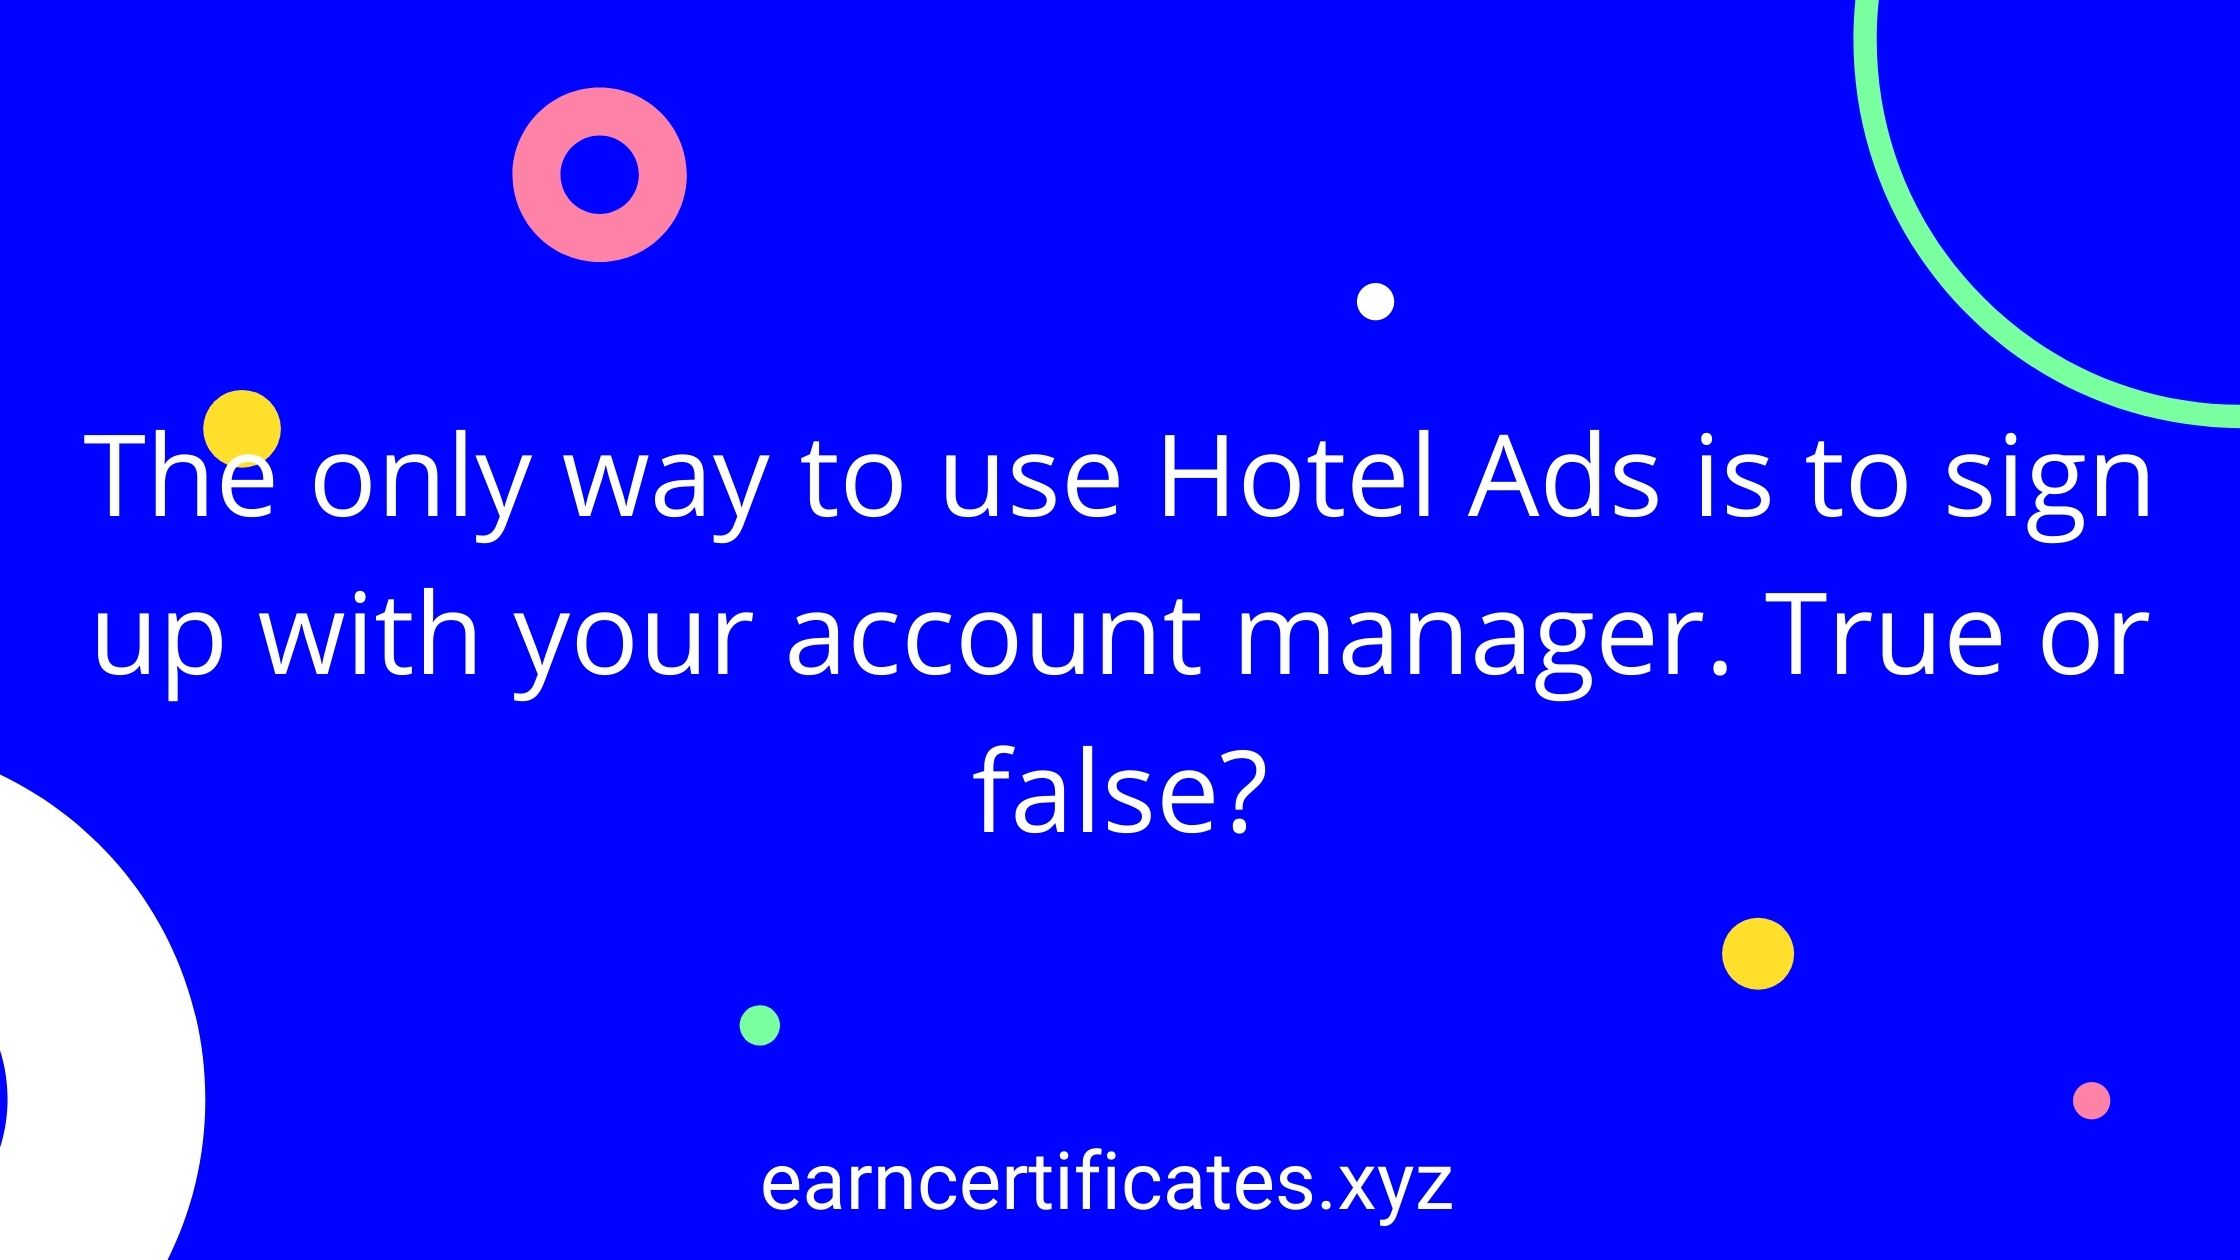 The only way to use Hotel Ads is to sign up with your account manager. True or false?